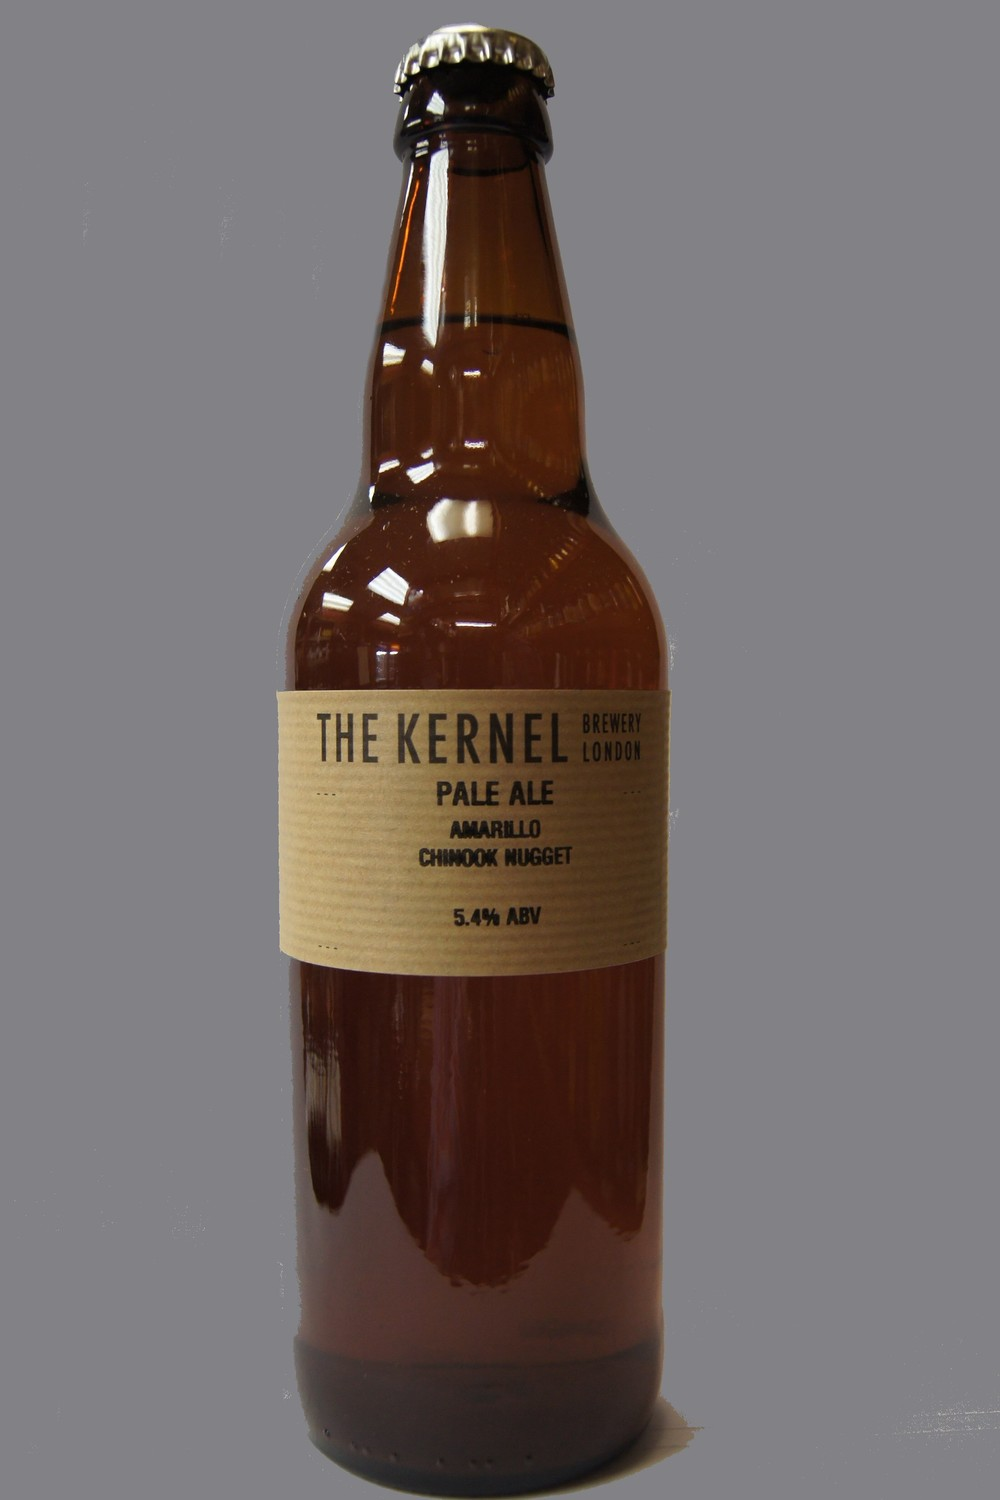 THE KERNEL BREWERY-Pale Ale Amarillo, Chinook Nuget.jpg